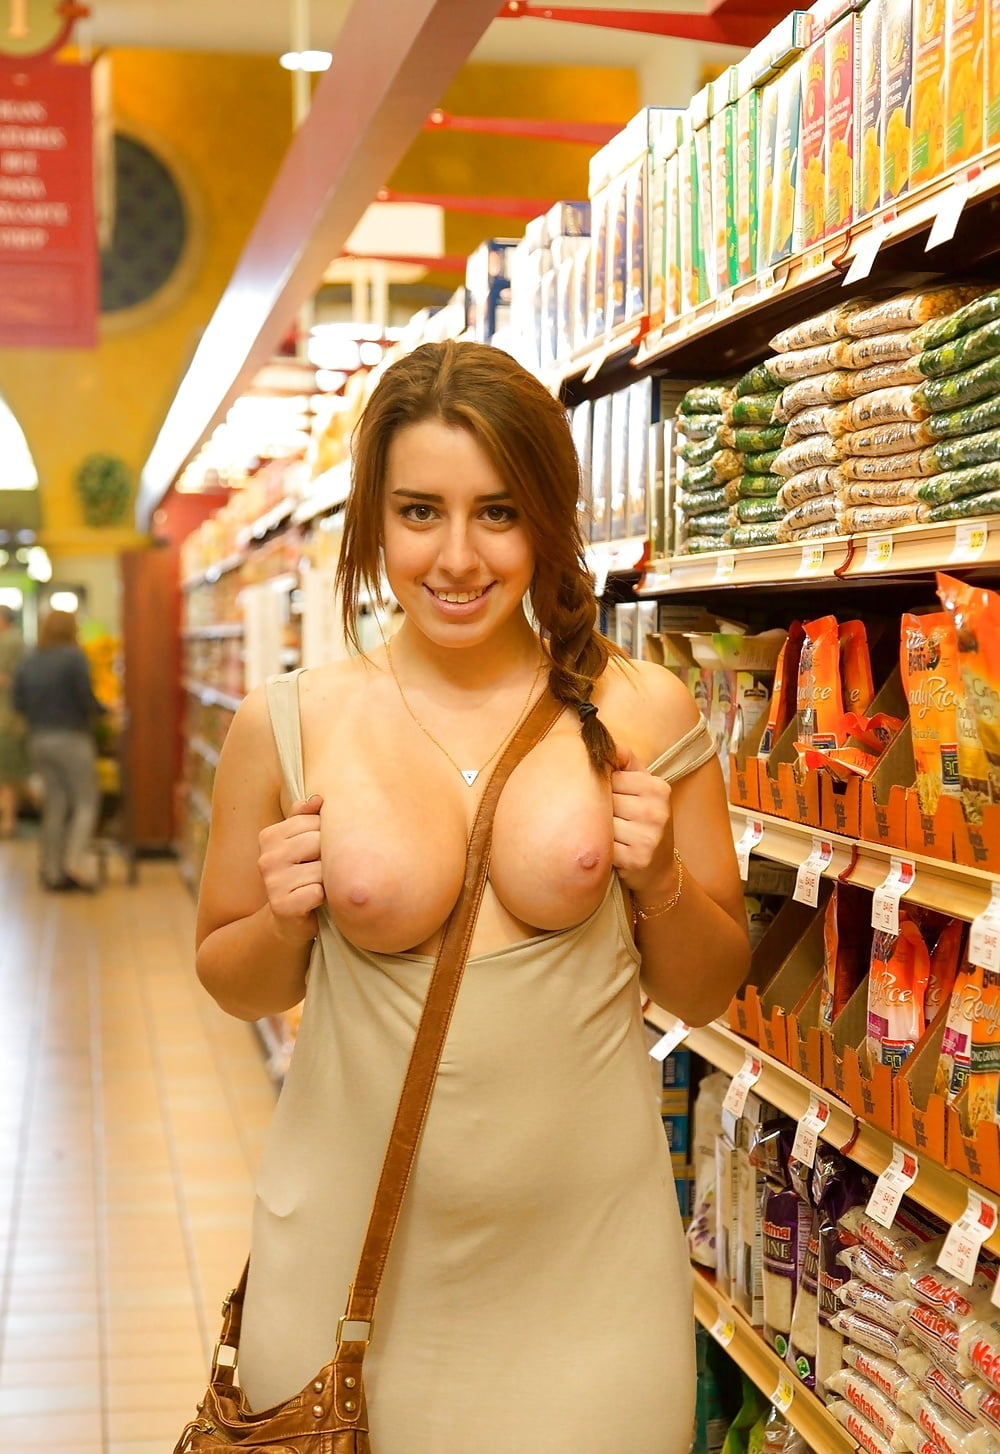 free-milf-shopping-galleries